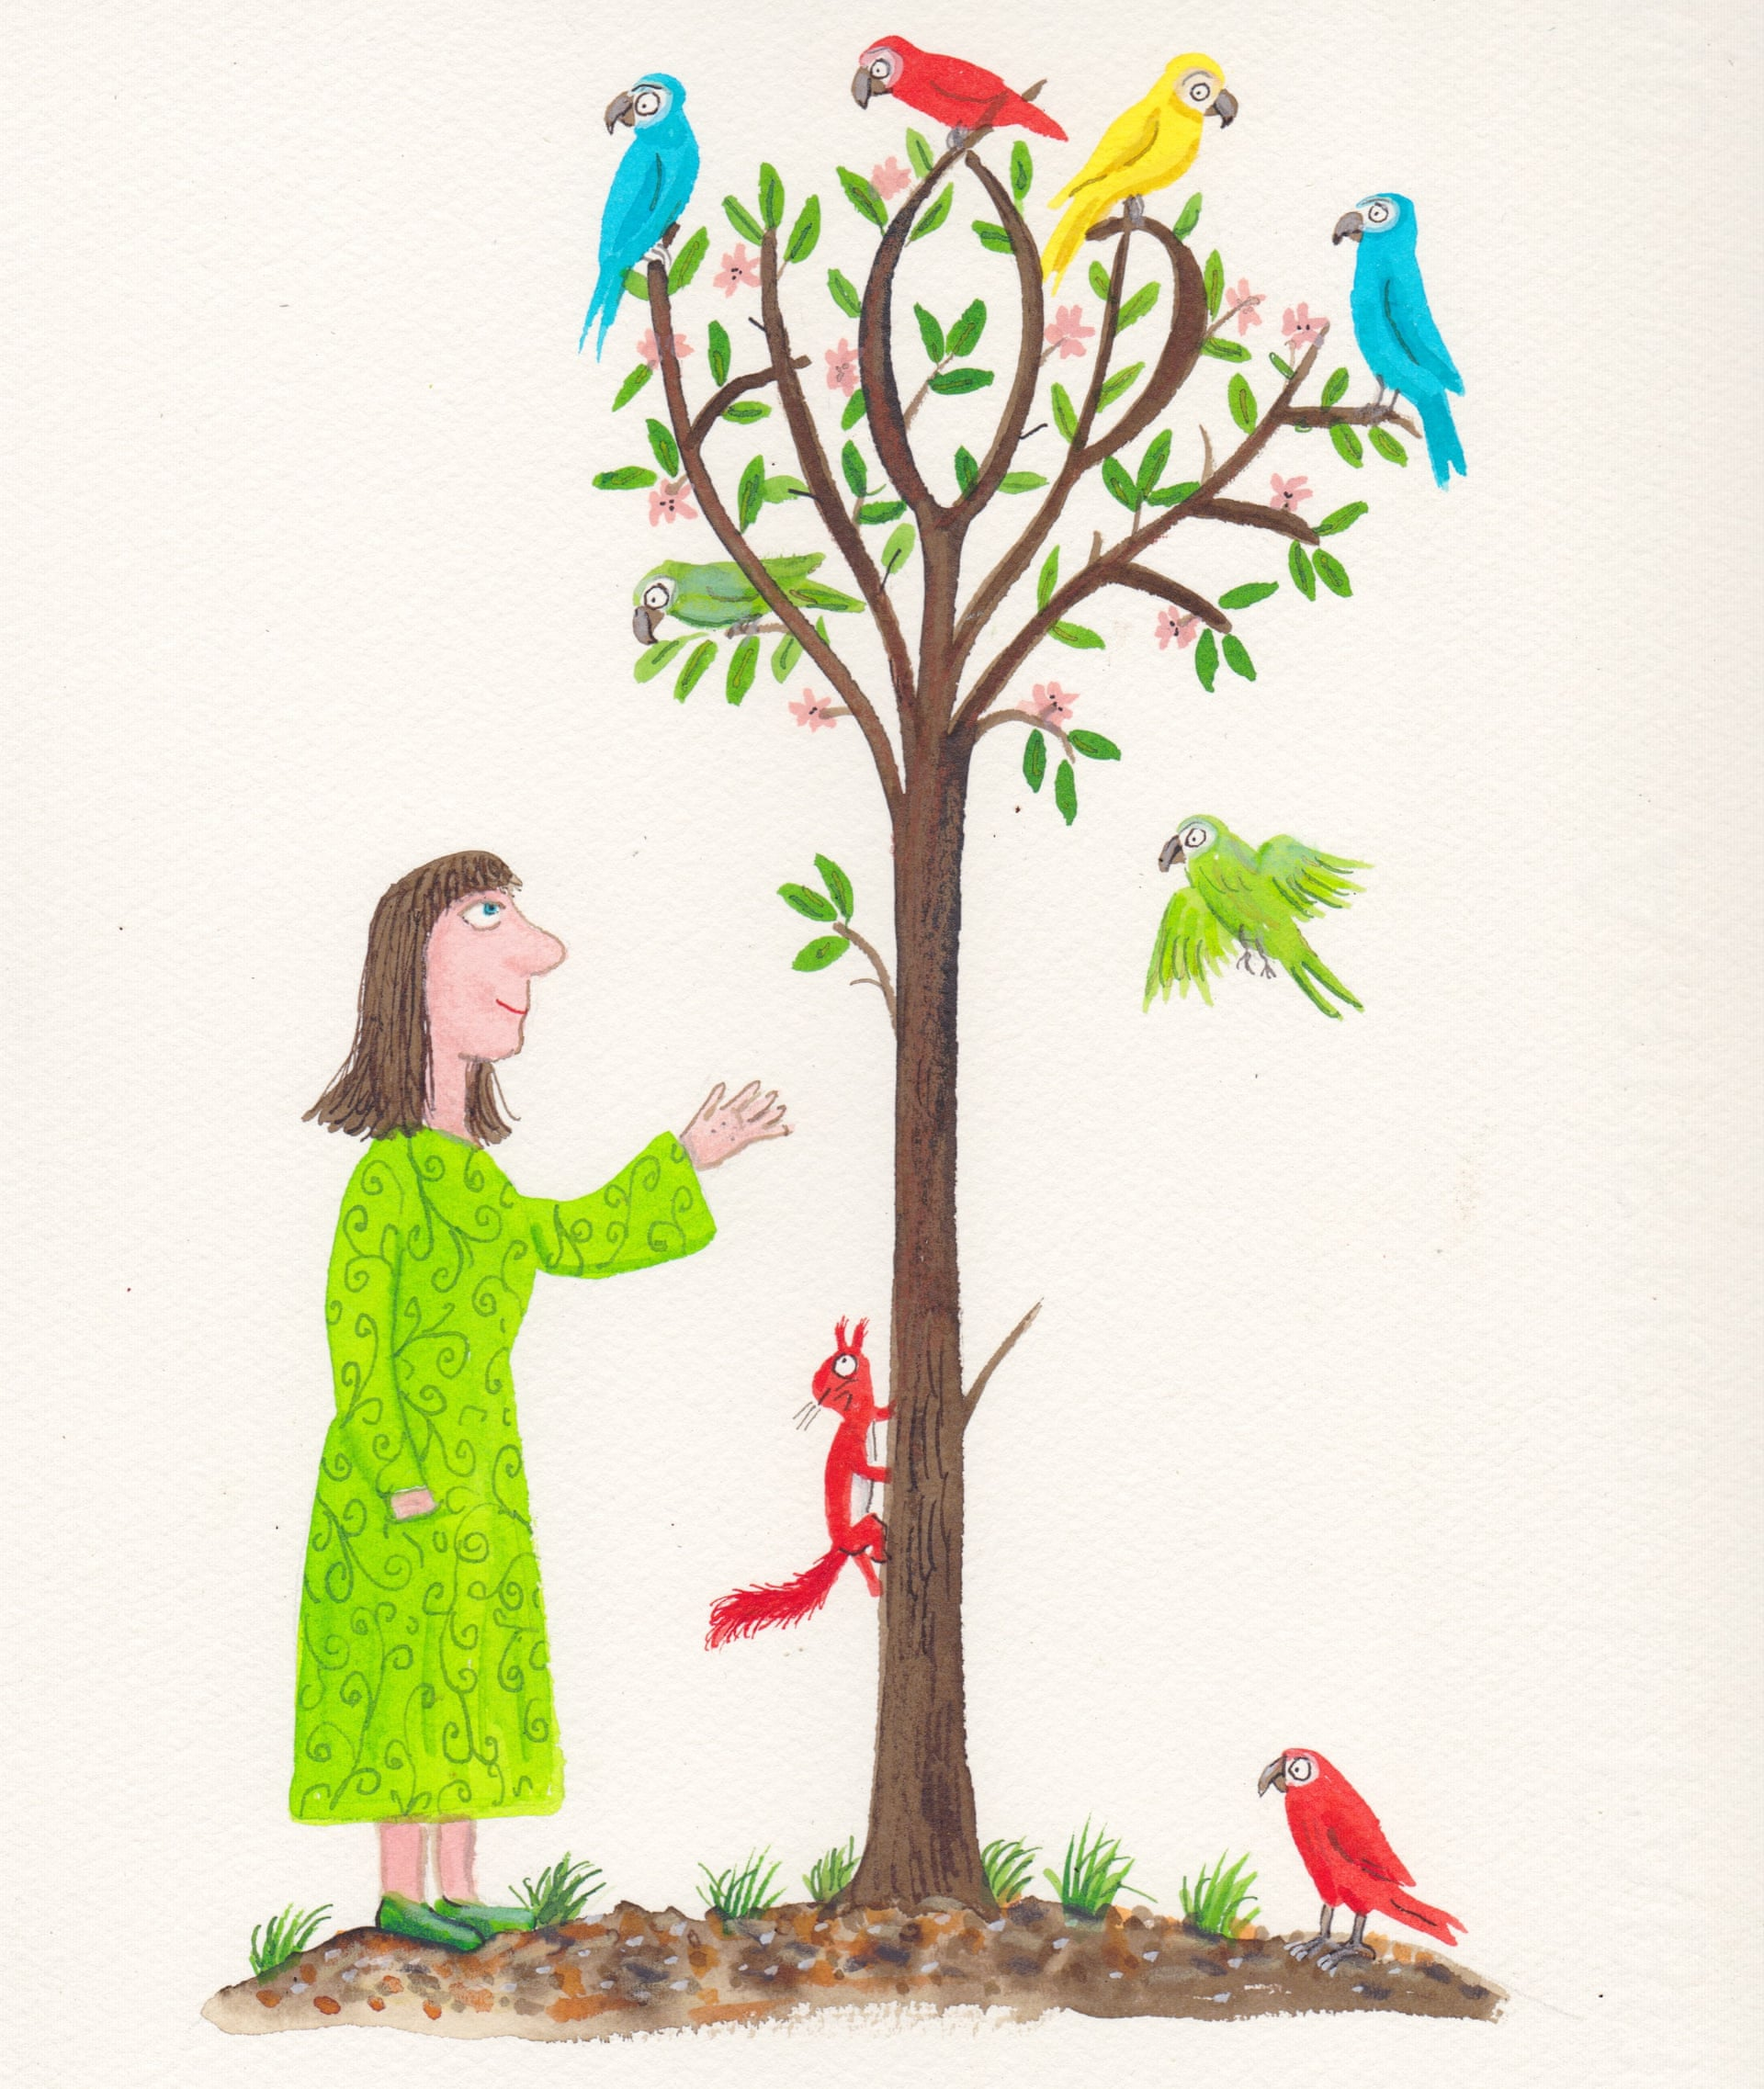 The Hope Tree, Axel Scheffler, 2020